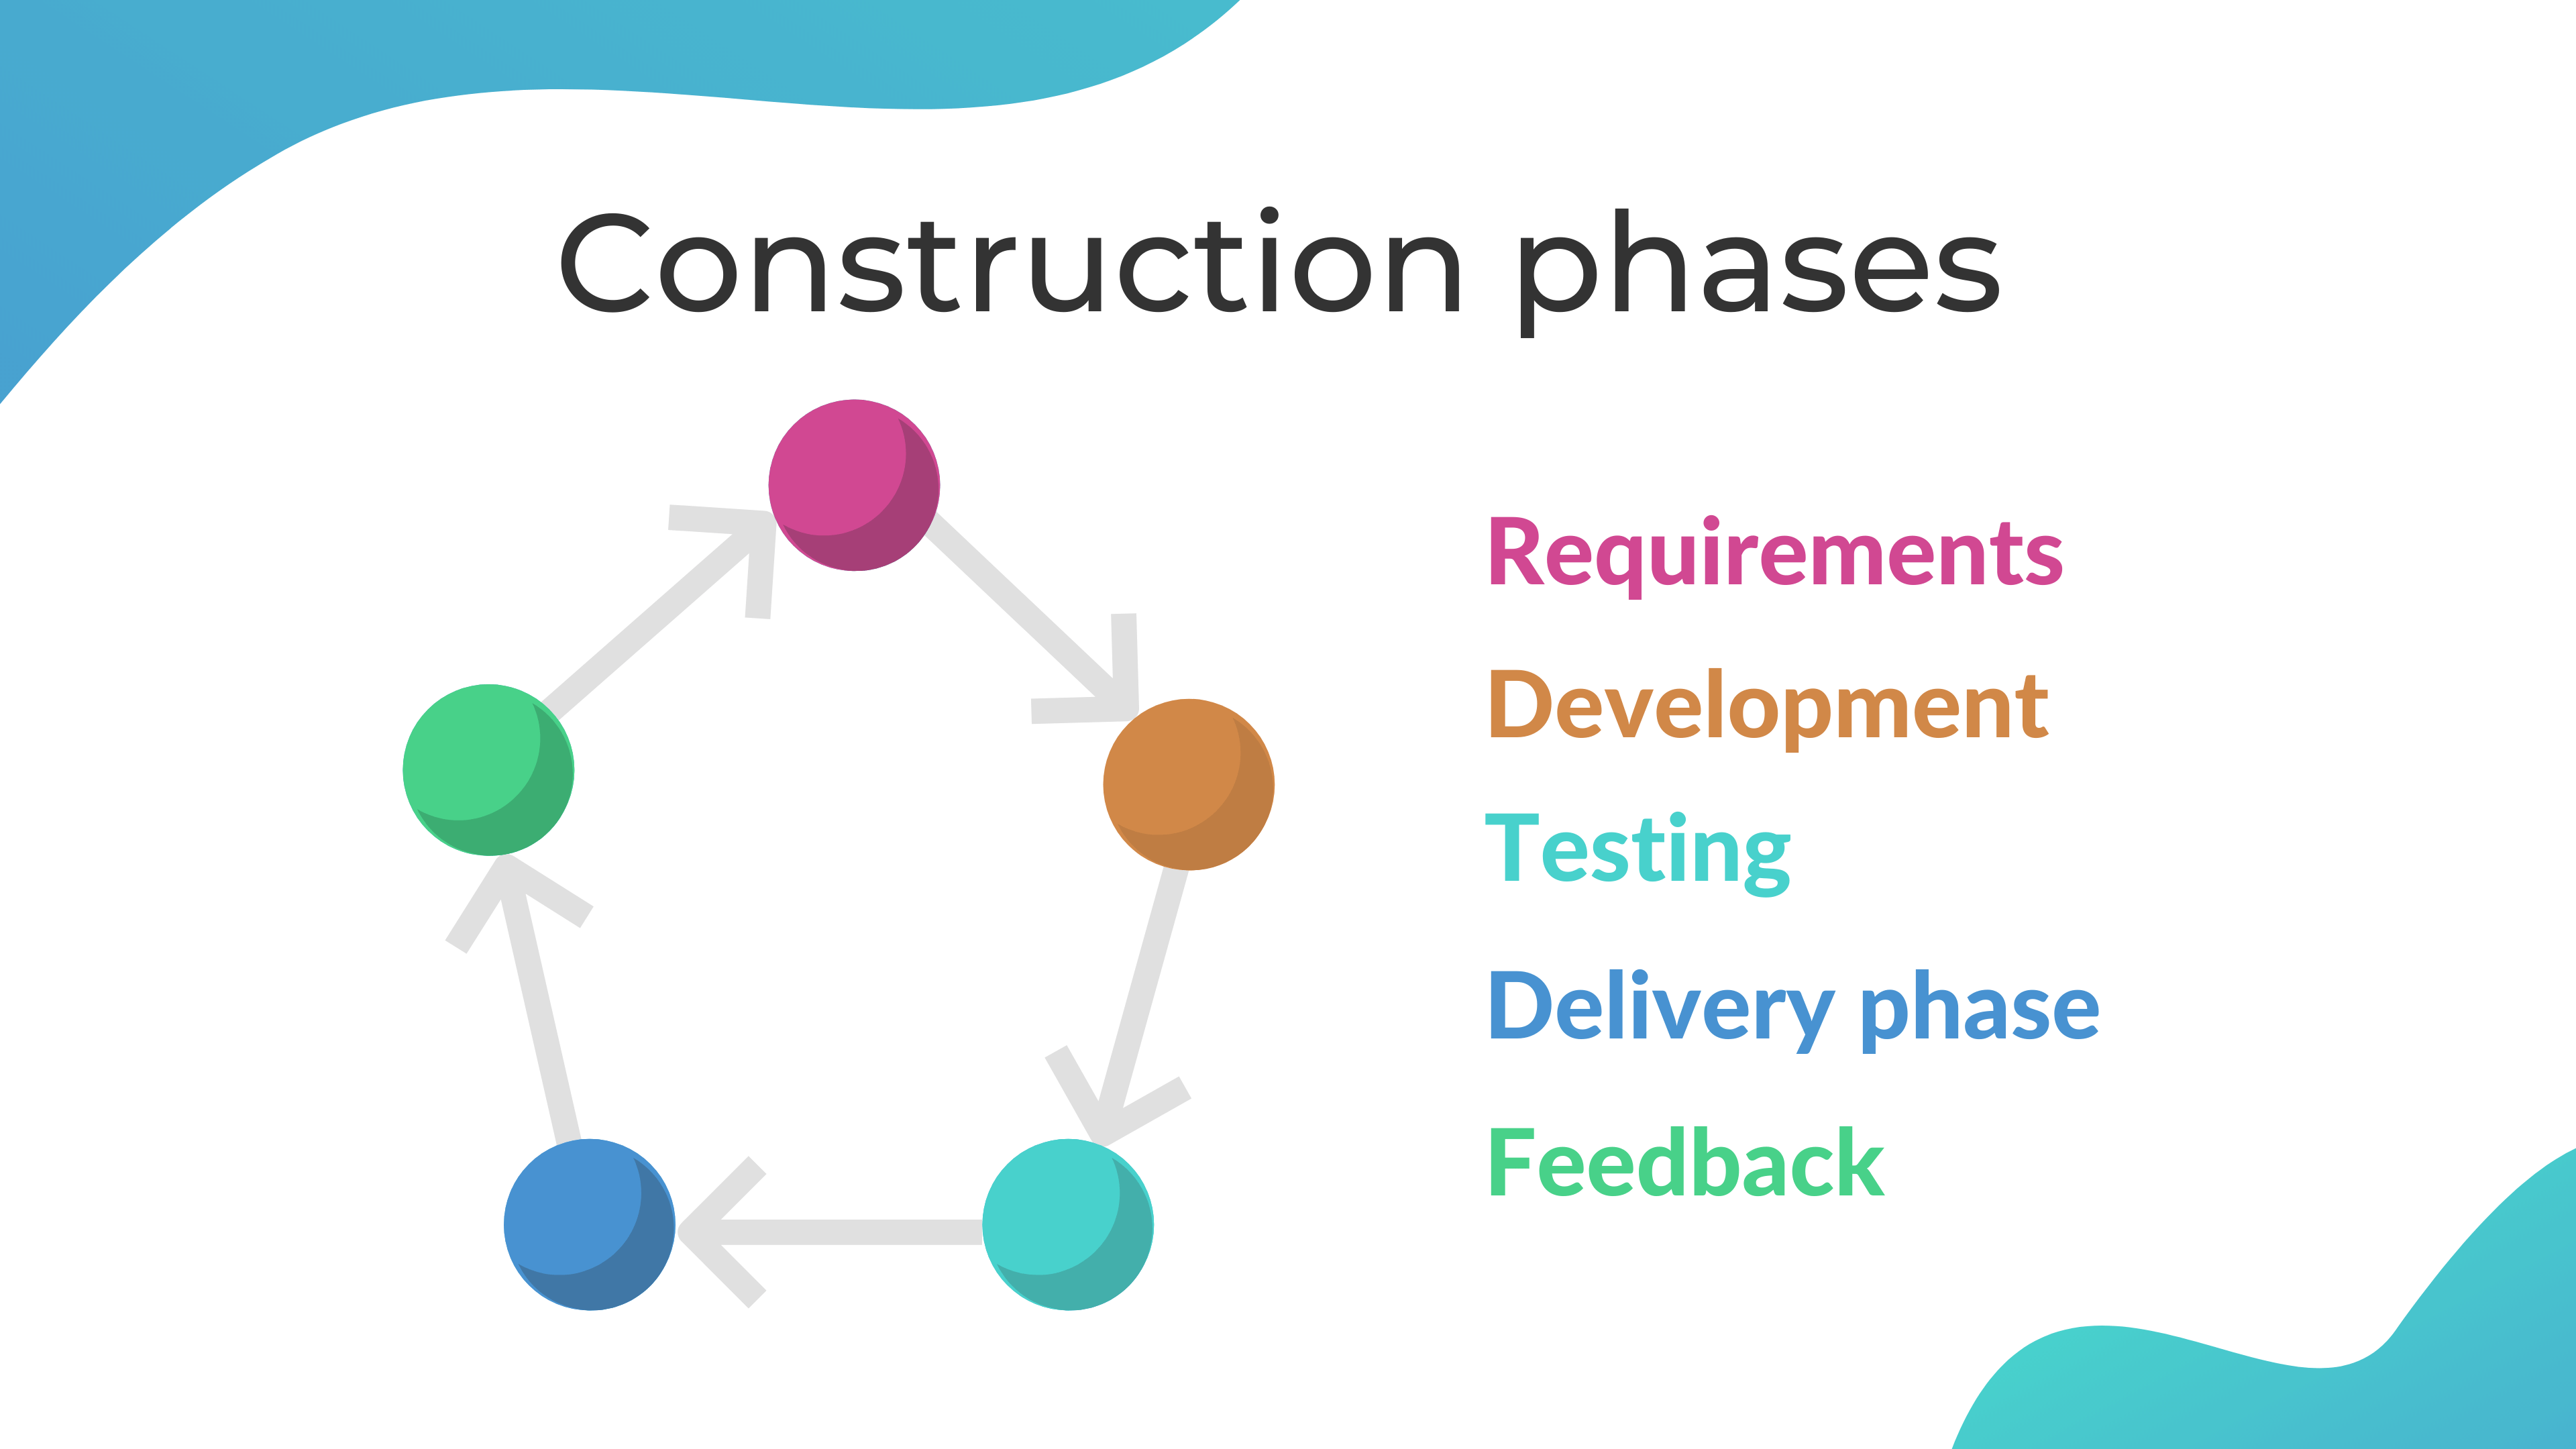 Construction (Iteration) phase of the agile project life cycle